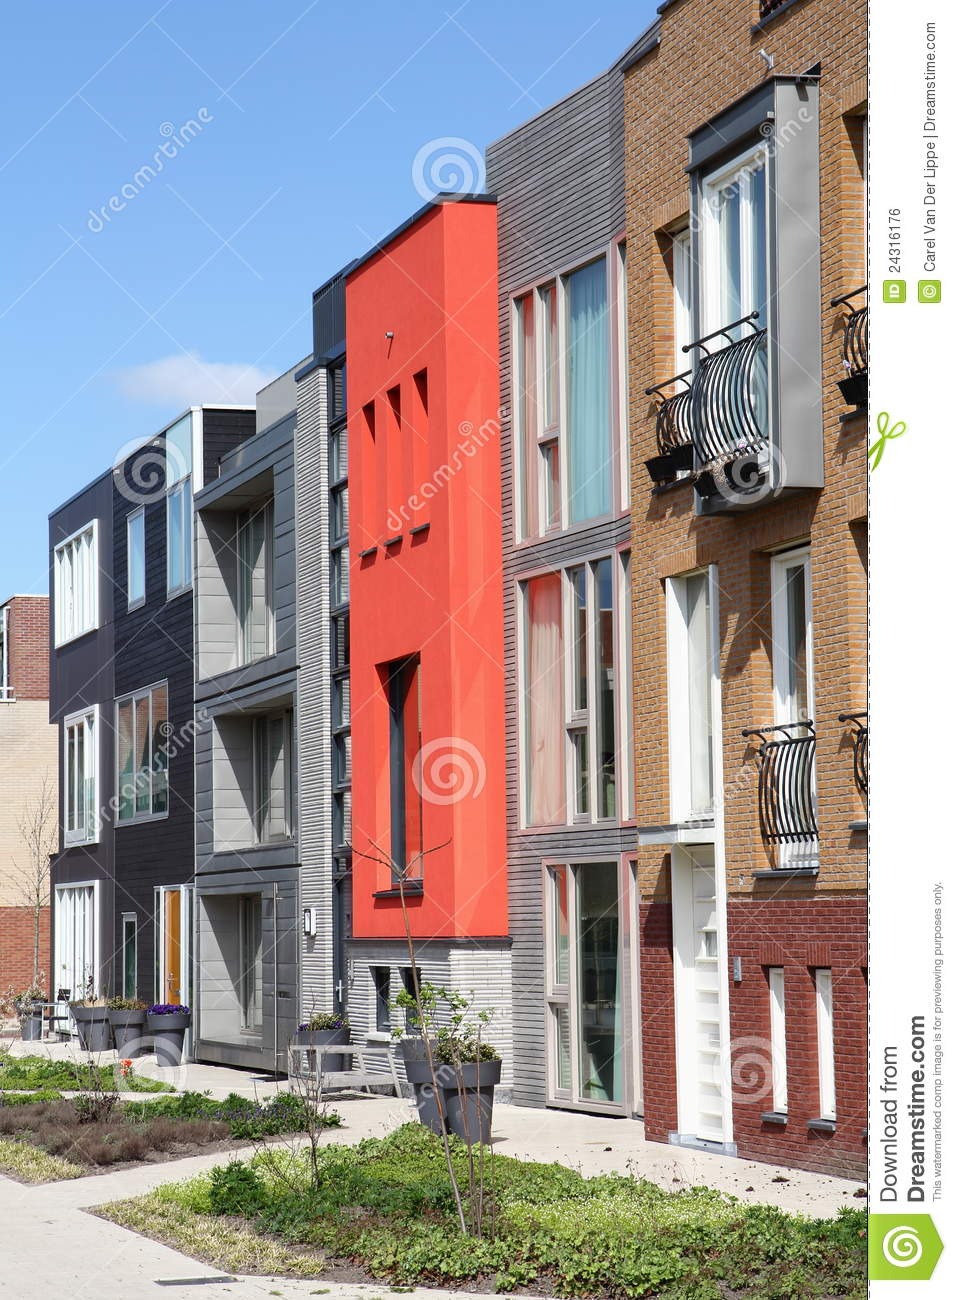 Modern ow Of Unique Dutch Homes In Leiden oyalty Free Stock ... - ^